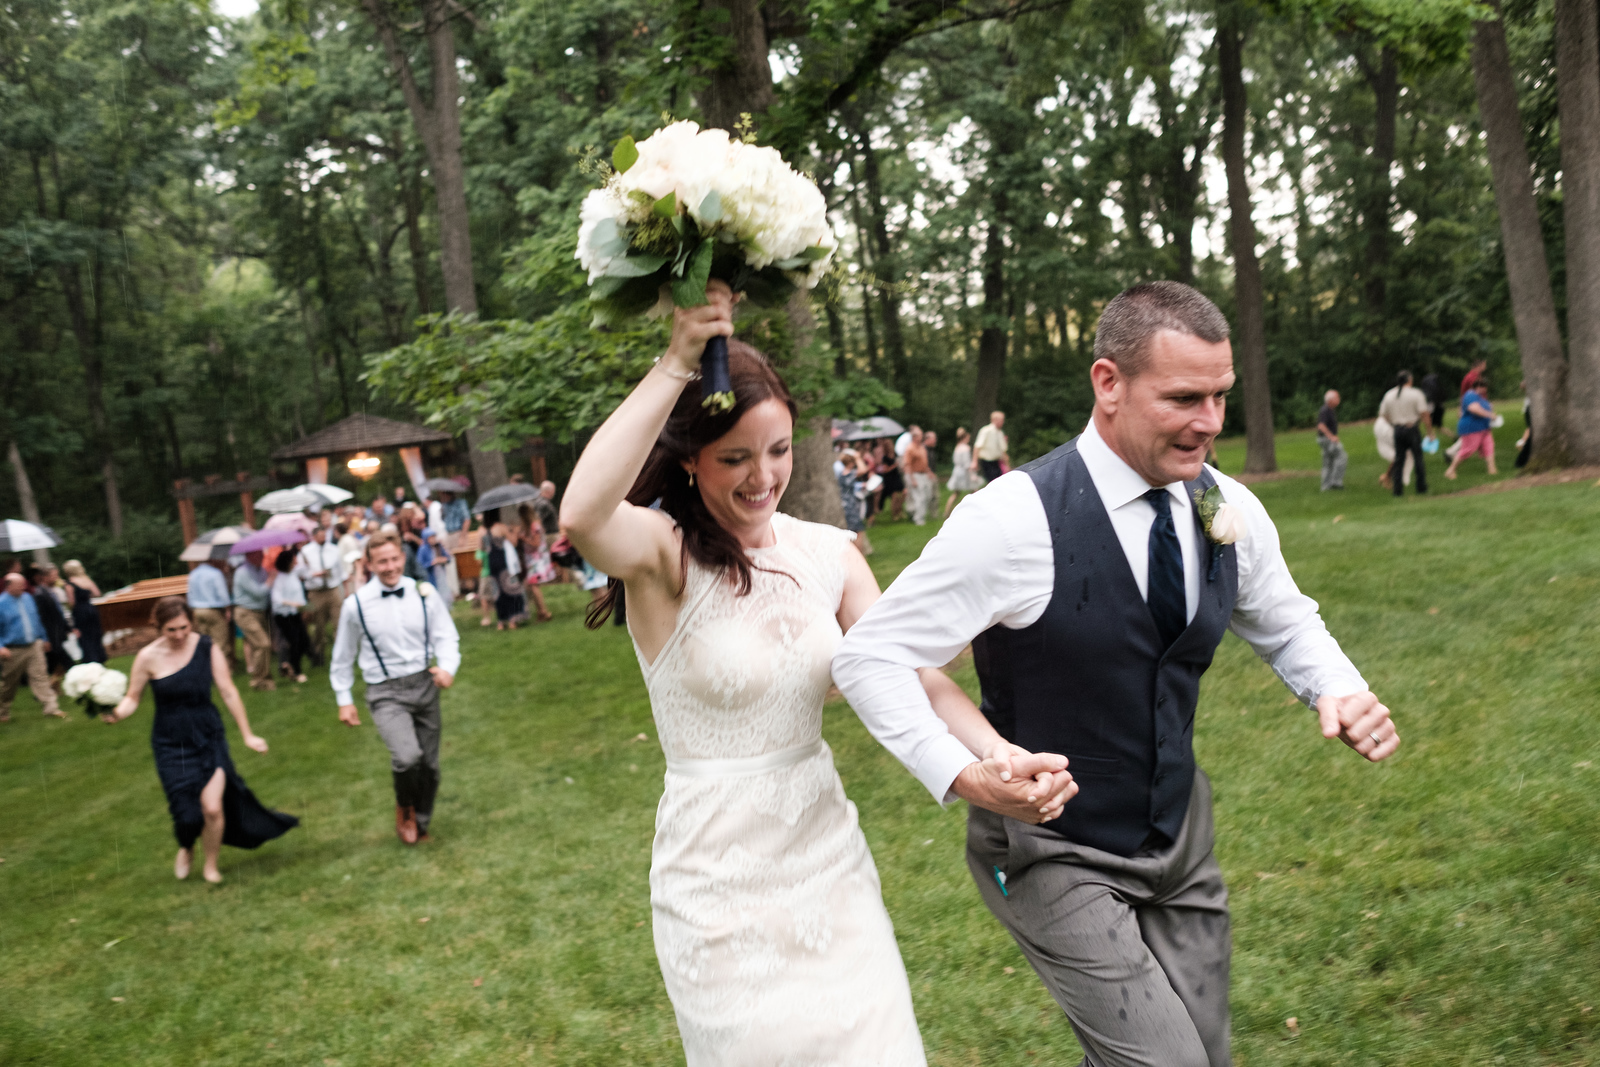 Jill & Rich's Kilbuck Creeek wedding